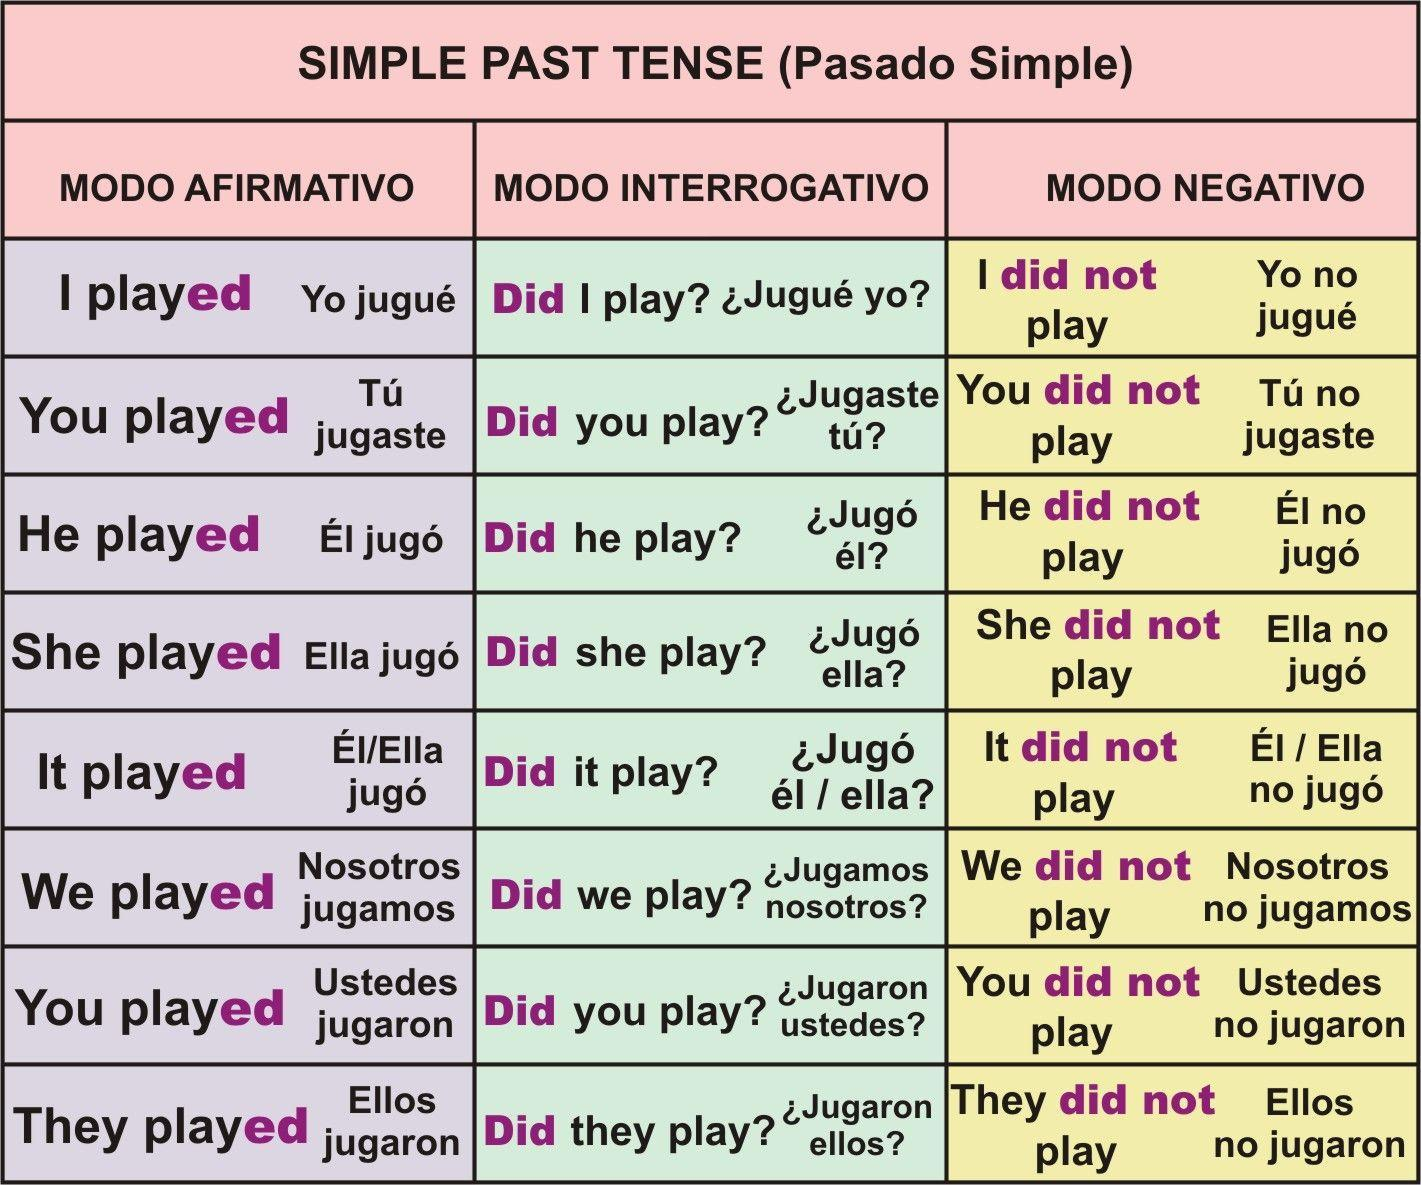 50 Oraciones Interrogativas En Ingles Pasado Simple